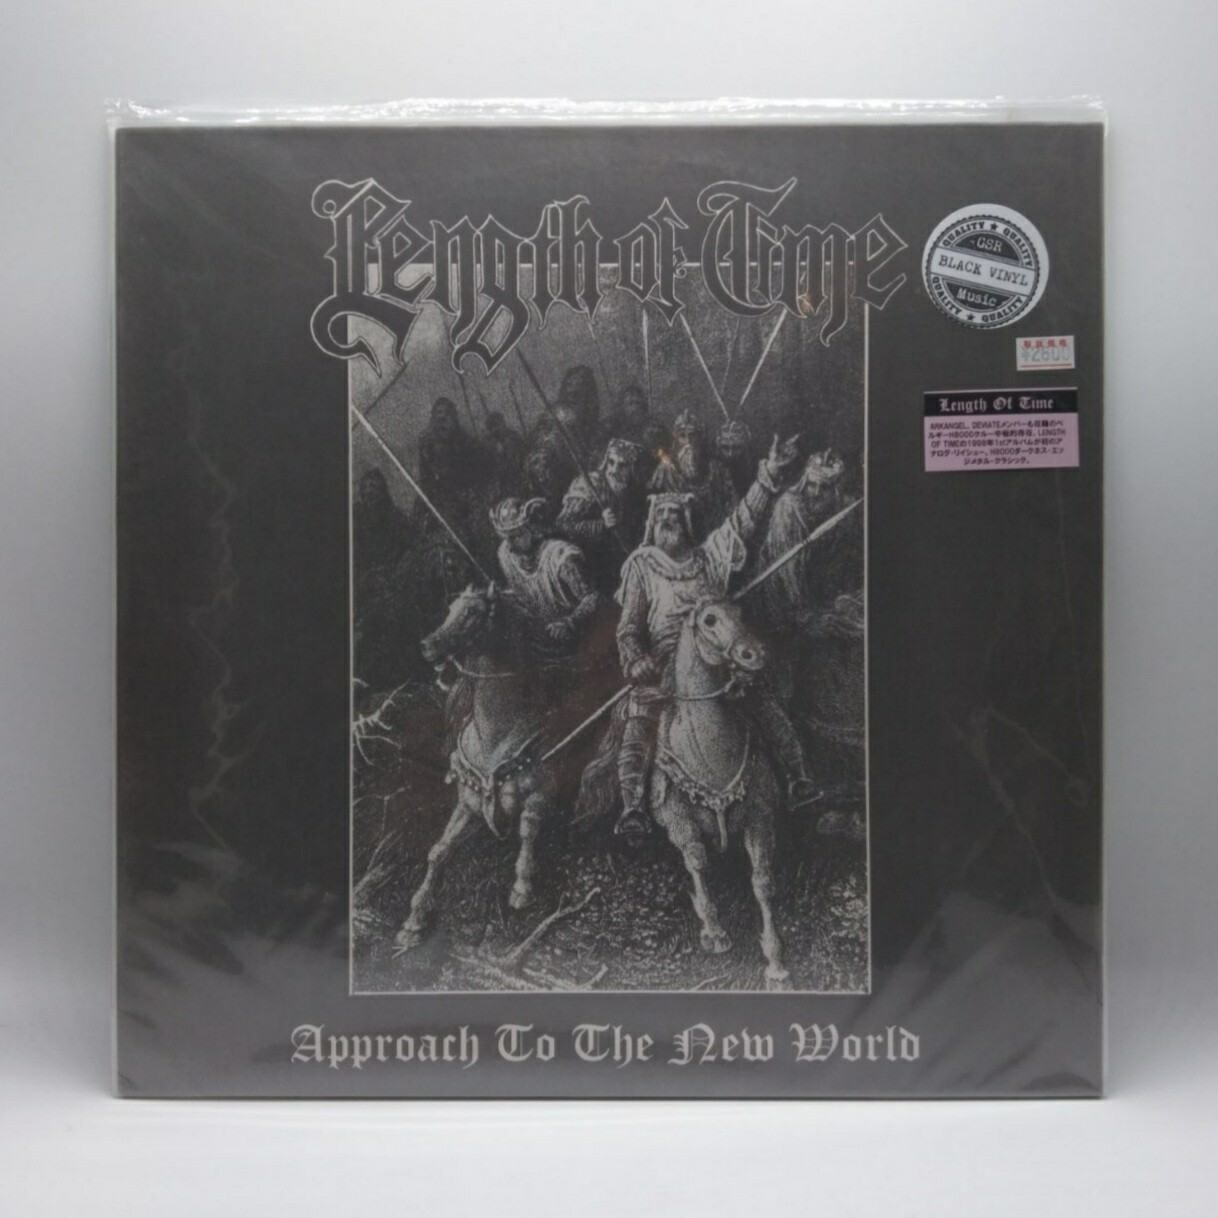 [USED] LENGTH OF TIME -APPROACH TO THE NEW WORLD- LP